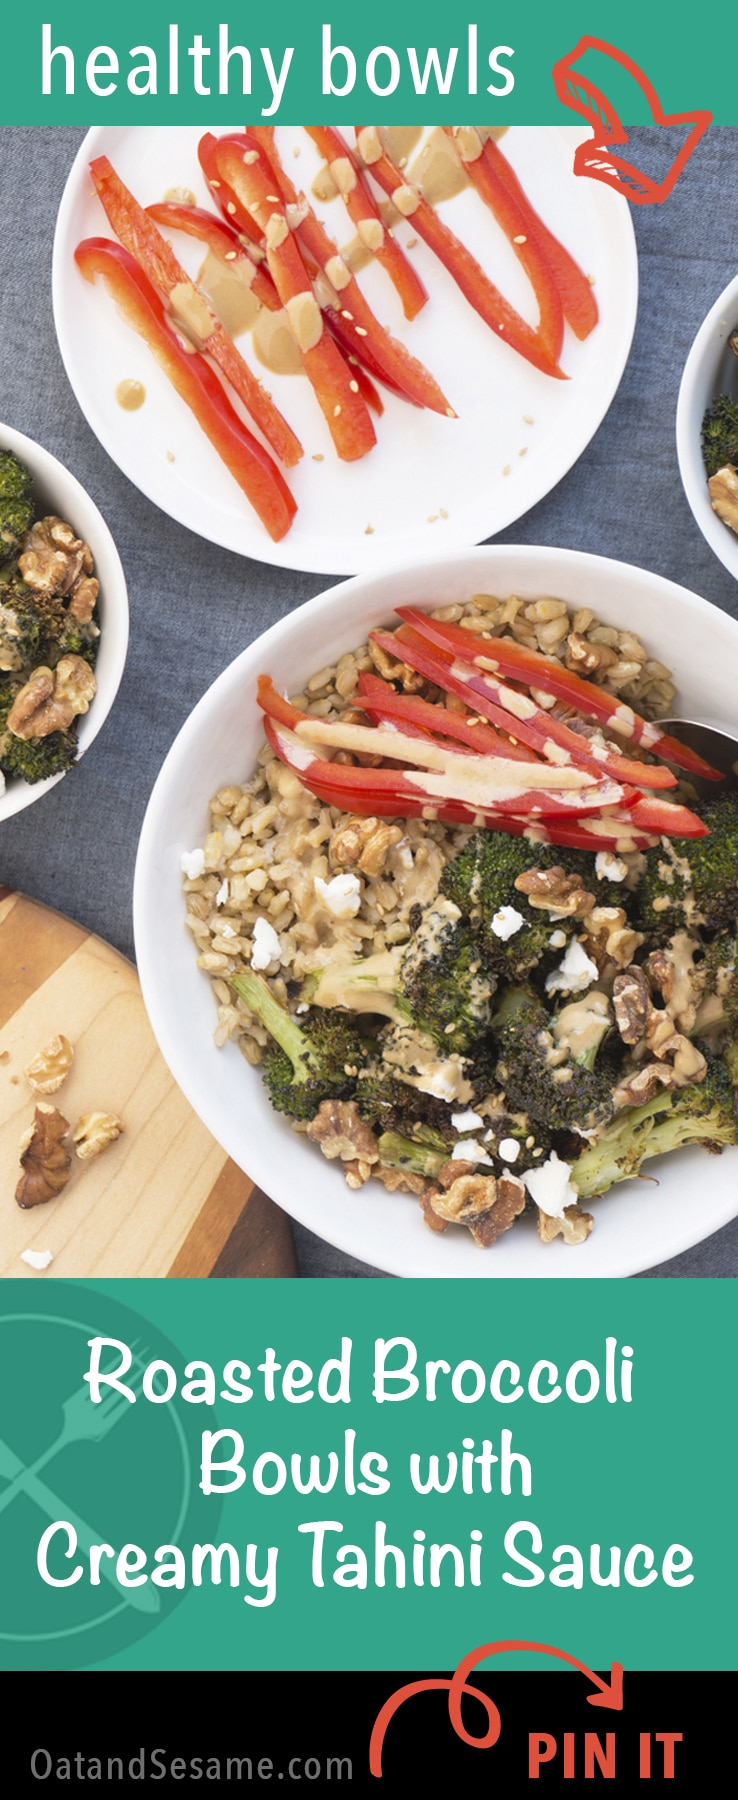 Roasted Broccoli Barley Bowls + Creamy Tahini Dressing - mix and match with your own vegetable combos! | VEGETARIAN | HEALTHY | TAHINI DRESSING | BROCCOLI | Recipe at OatandSesame.com